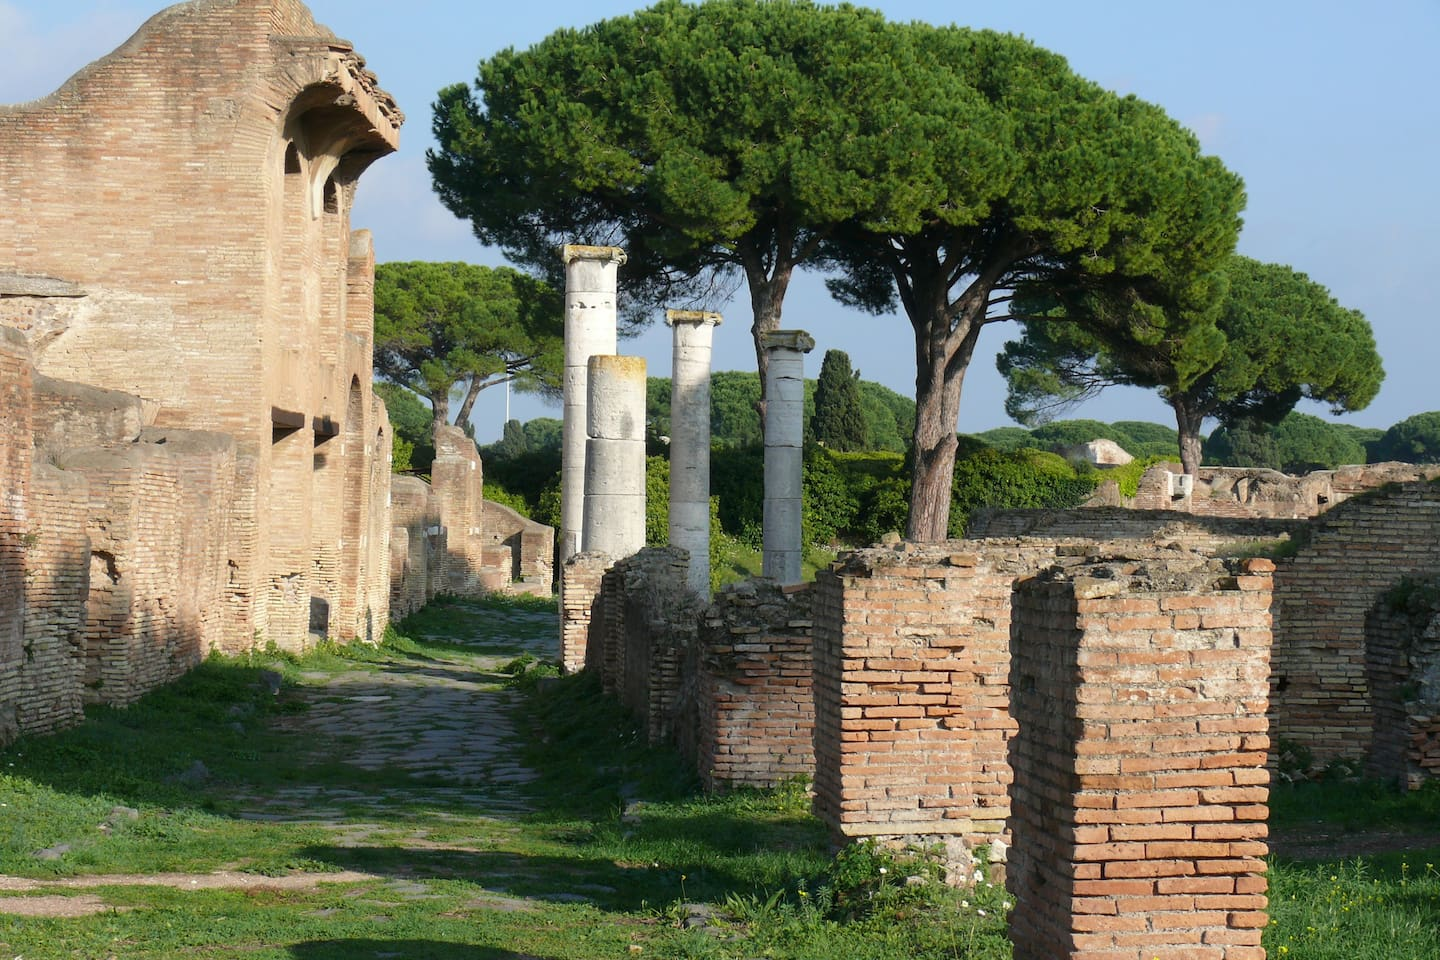 Ancient Roman ruins at Ostia Antica 1 stop away on the loal train. Why travel to Pompei!!